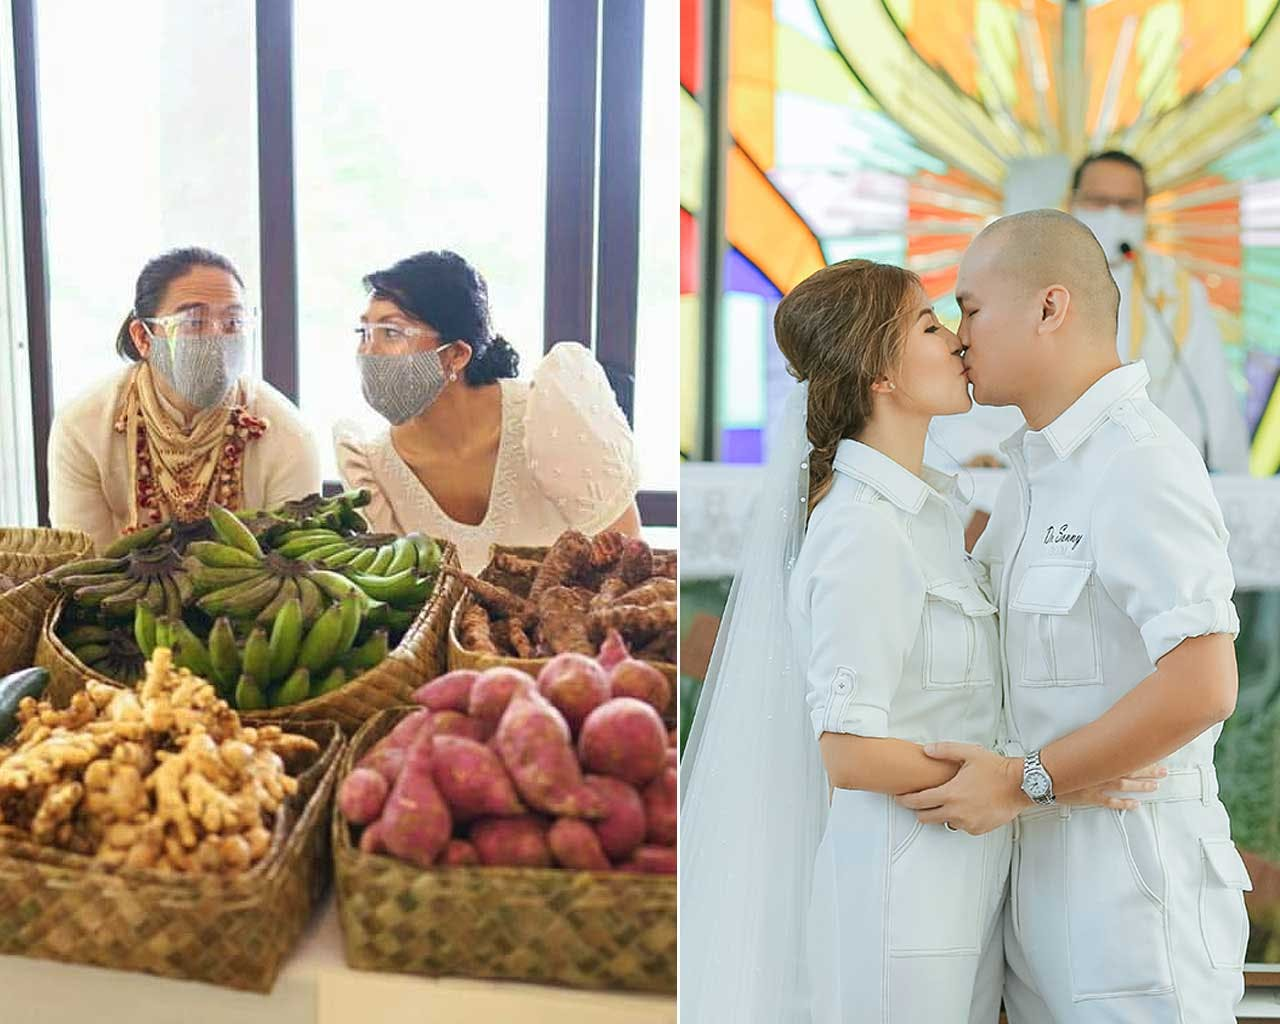 4 Unique Quarantine Wedding Ideas: These Couples Carved Out Their Own Traditions For The Big Day